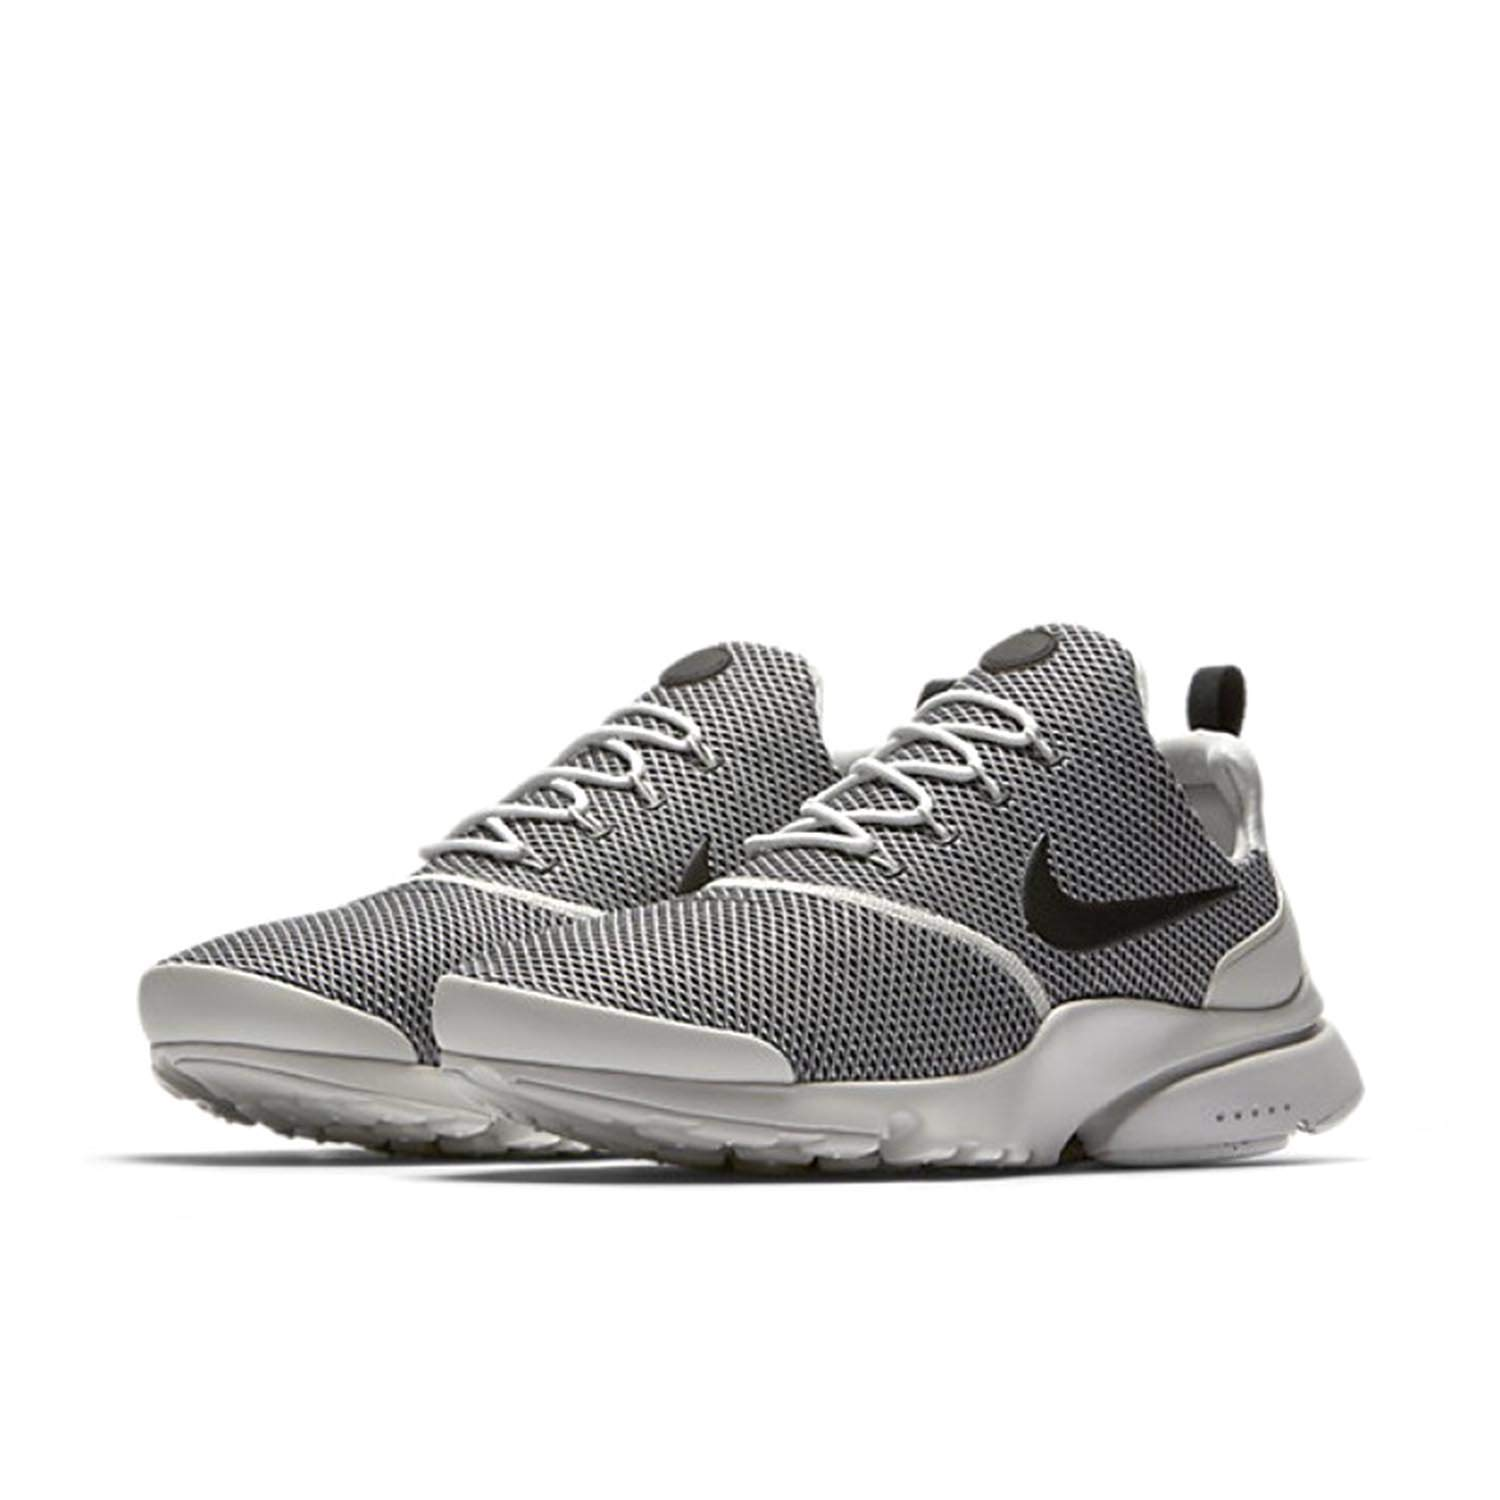 Trainers Nike Mens Presto Fly Se Low Top Lace Up Running Sneaker